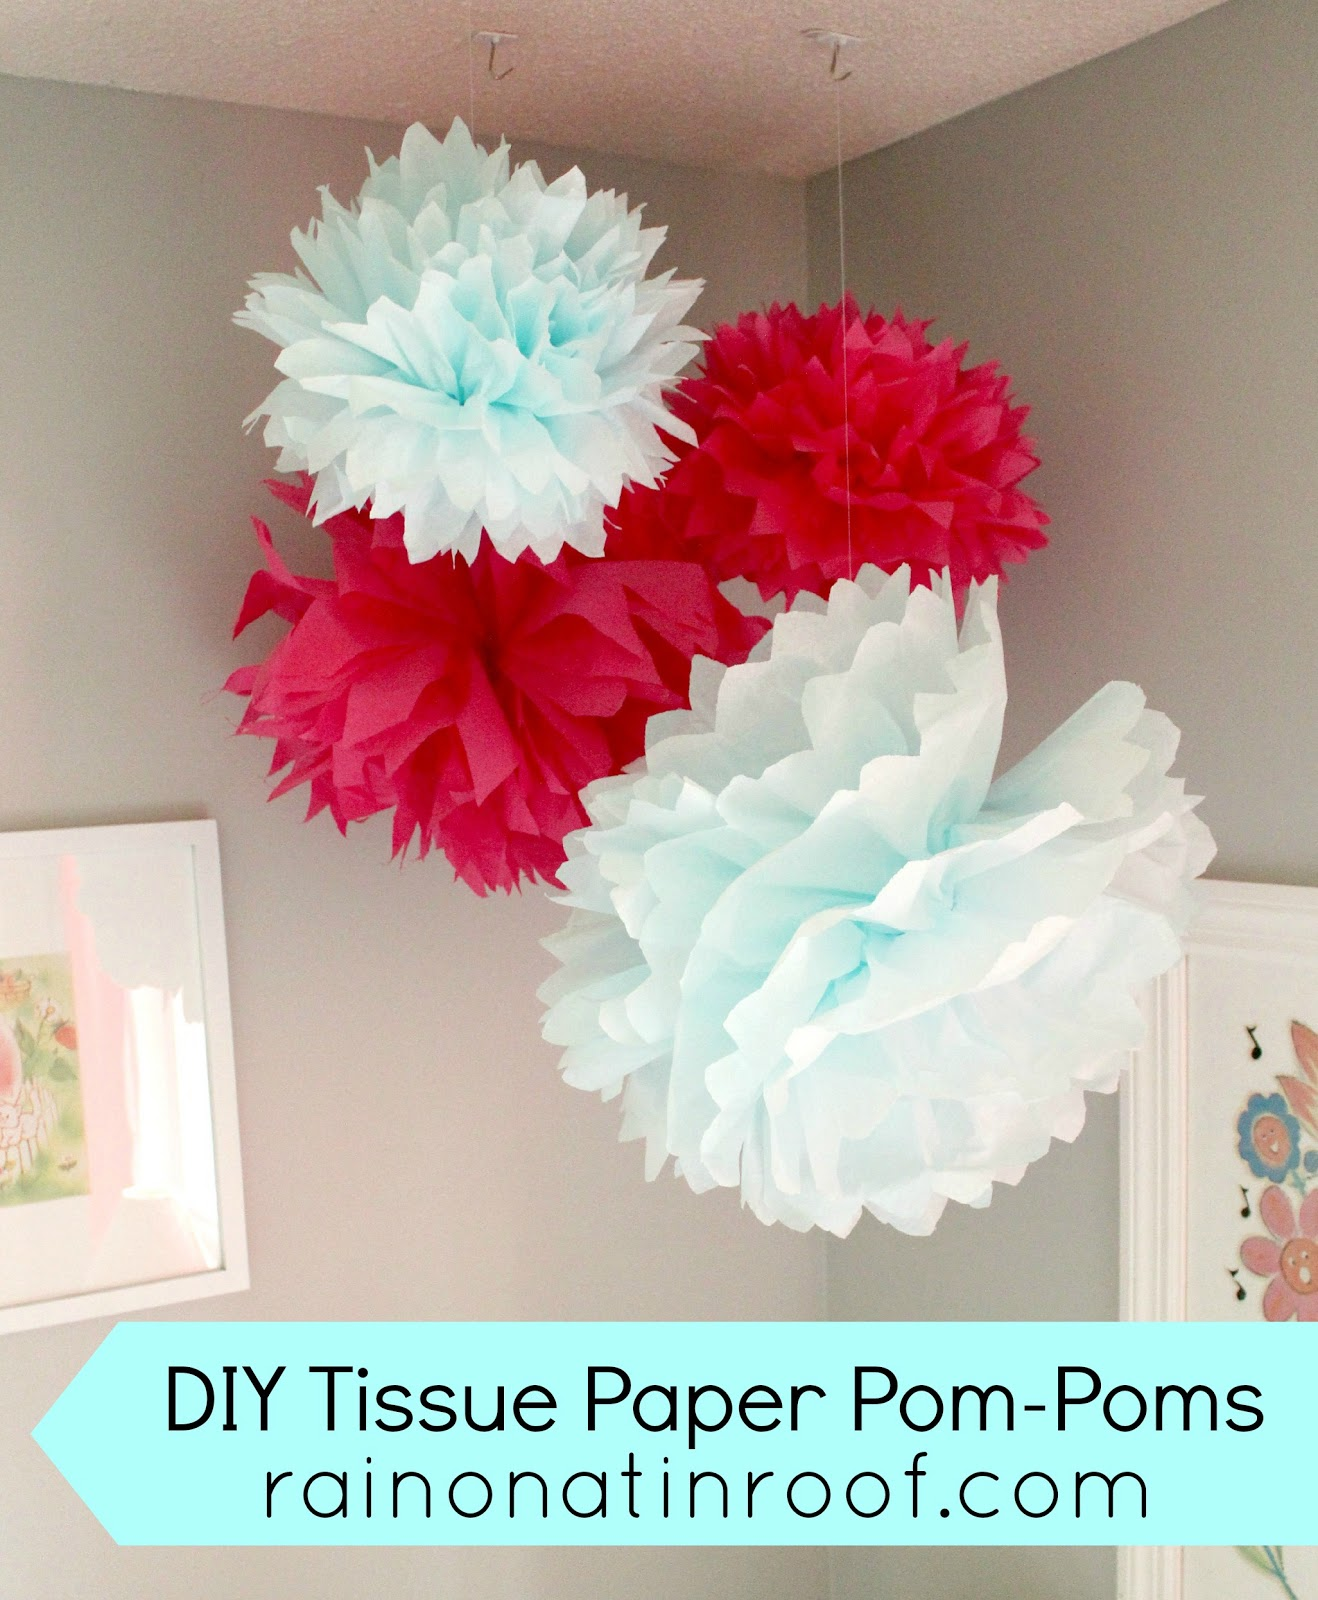 diy tissue paper pom poms easy and fun. Black Bedroom Furniture Sets. Home Design Ideas